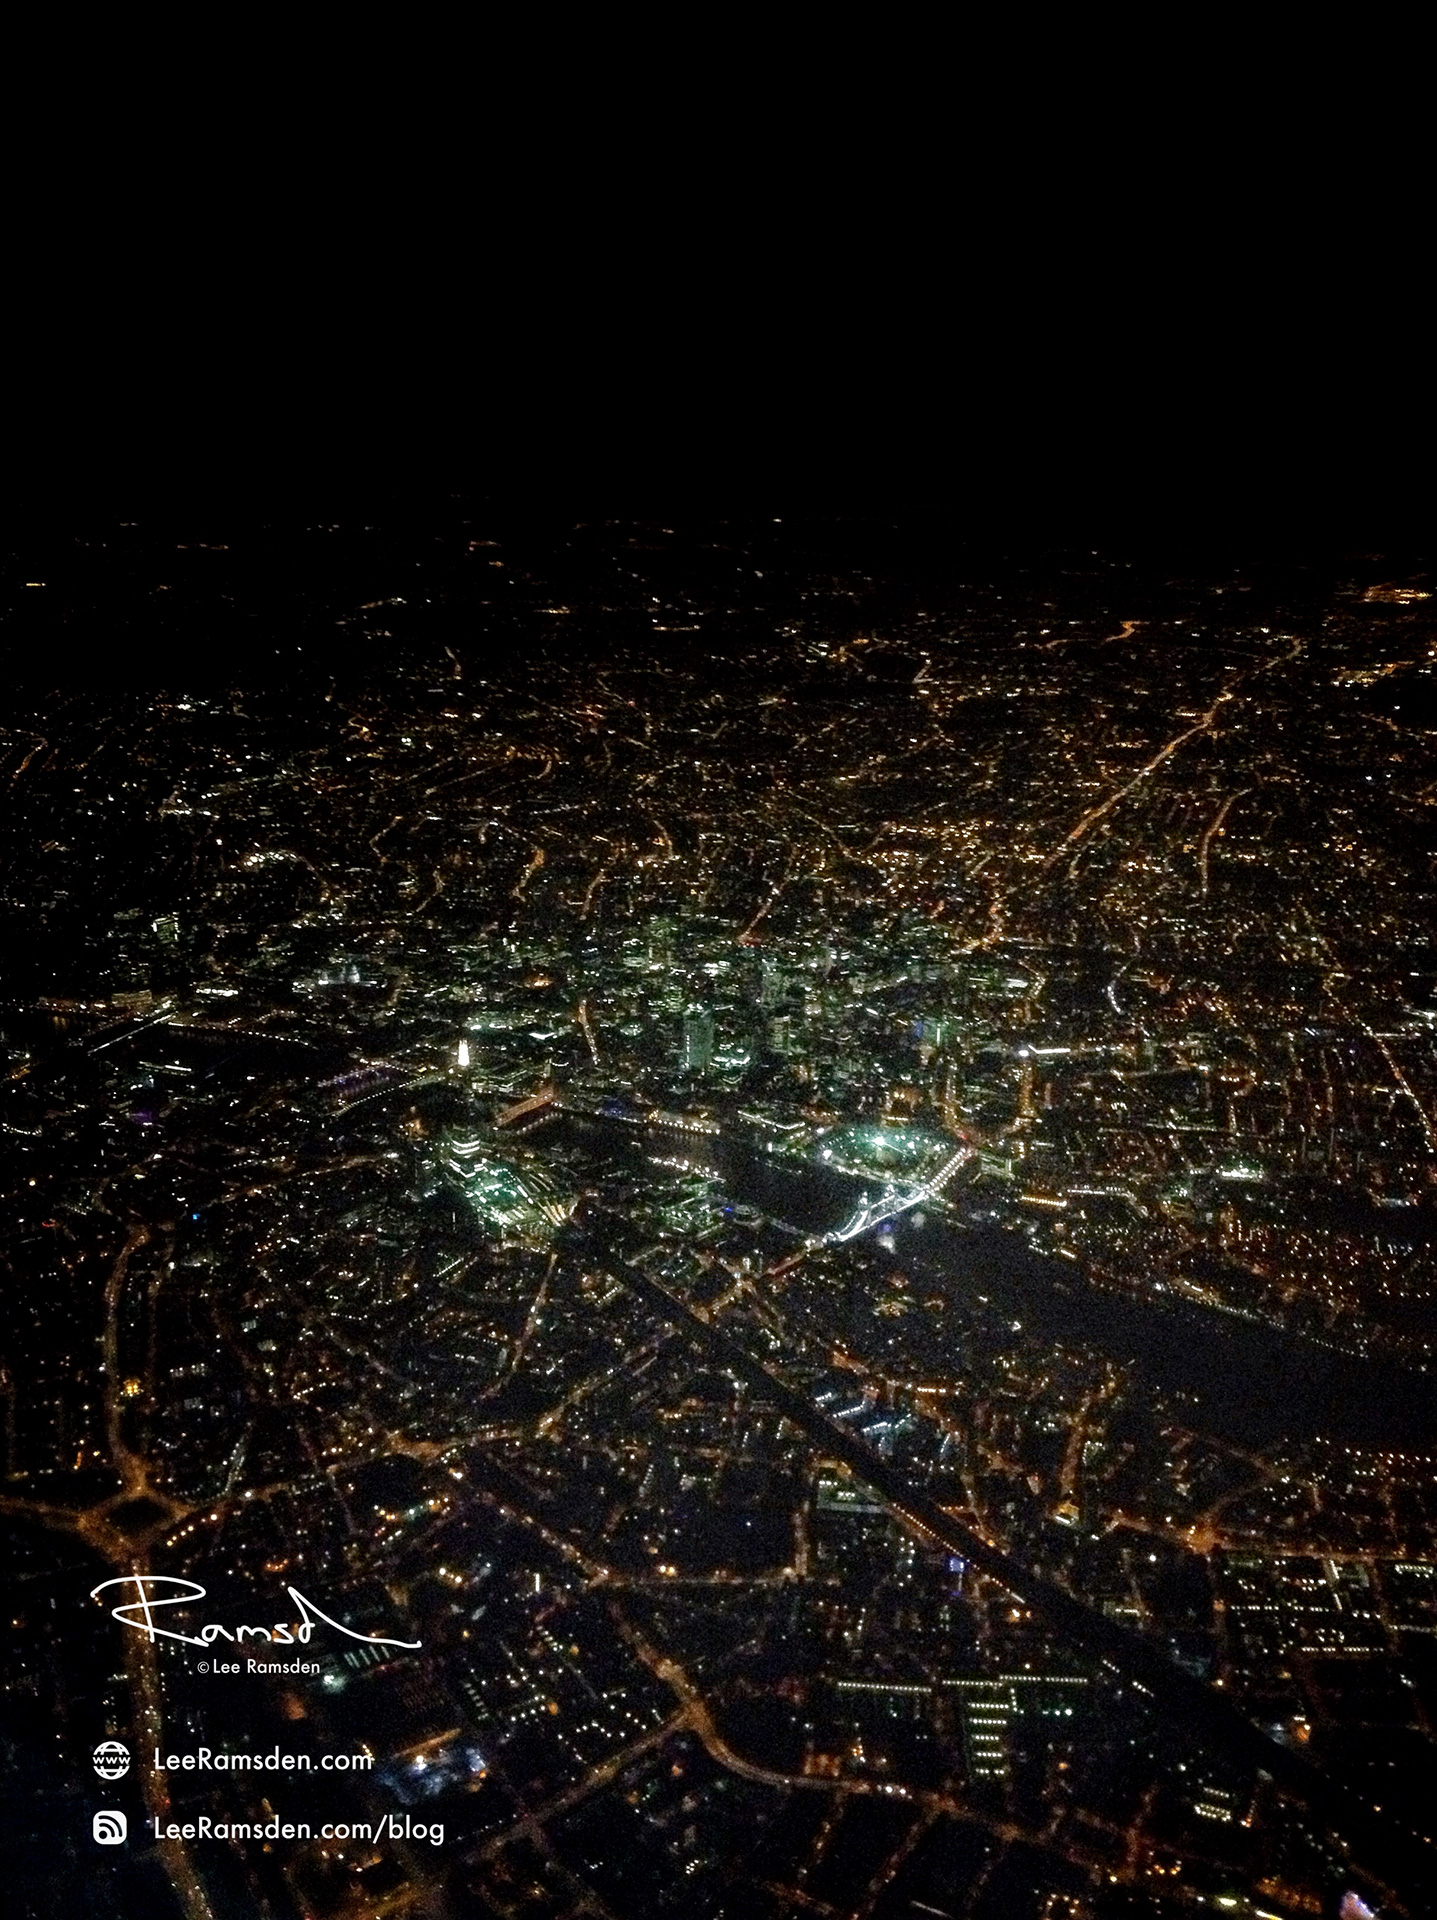 iPhone imagelondon river thames iPhone iPhoneography nightscape from a plane lee ramsden